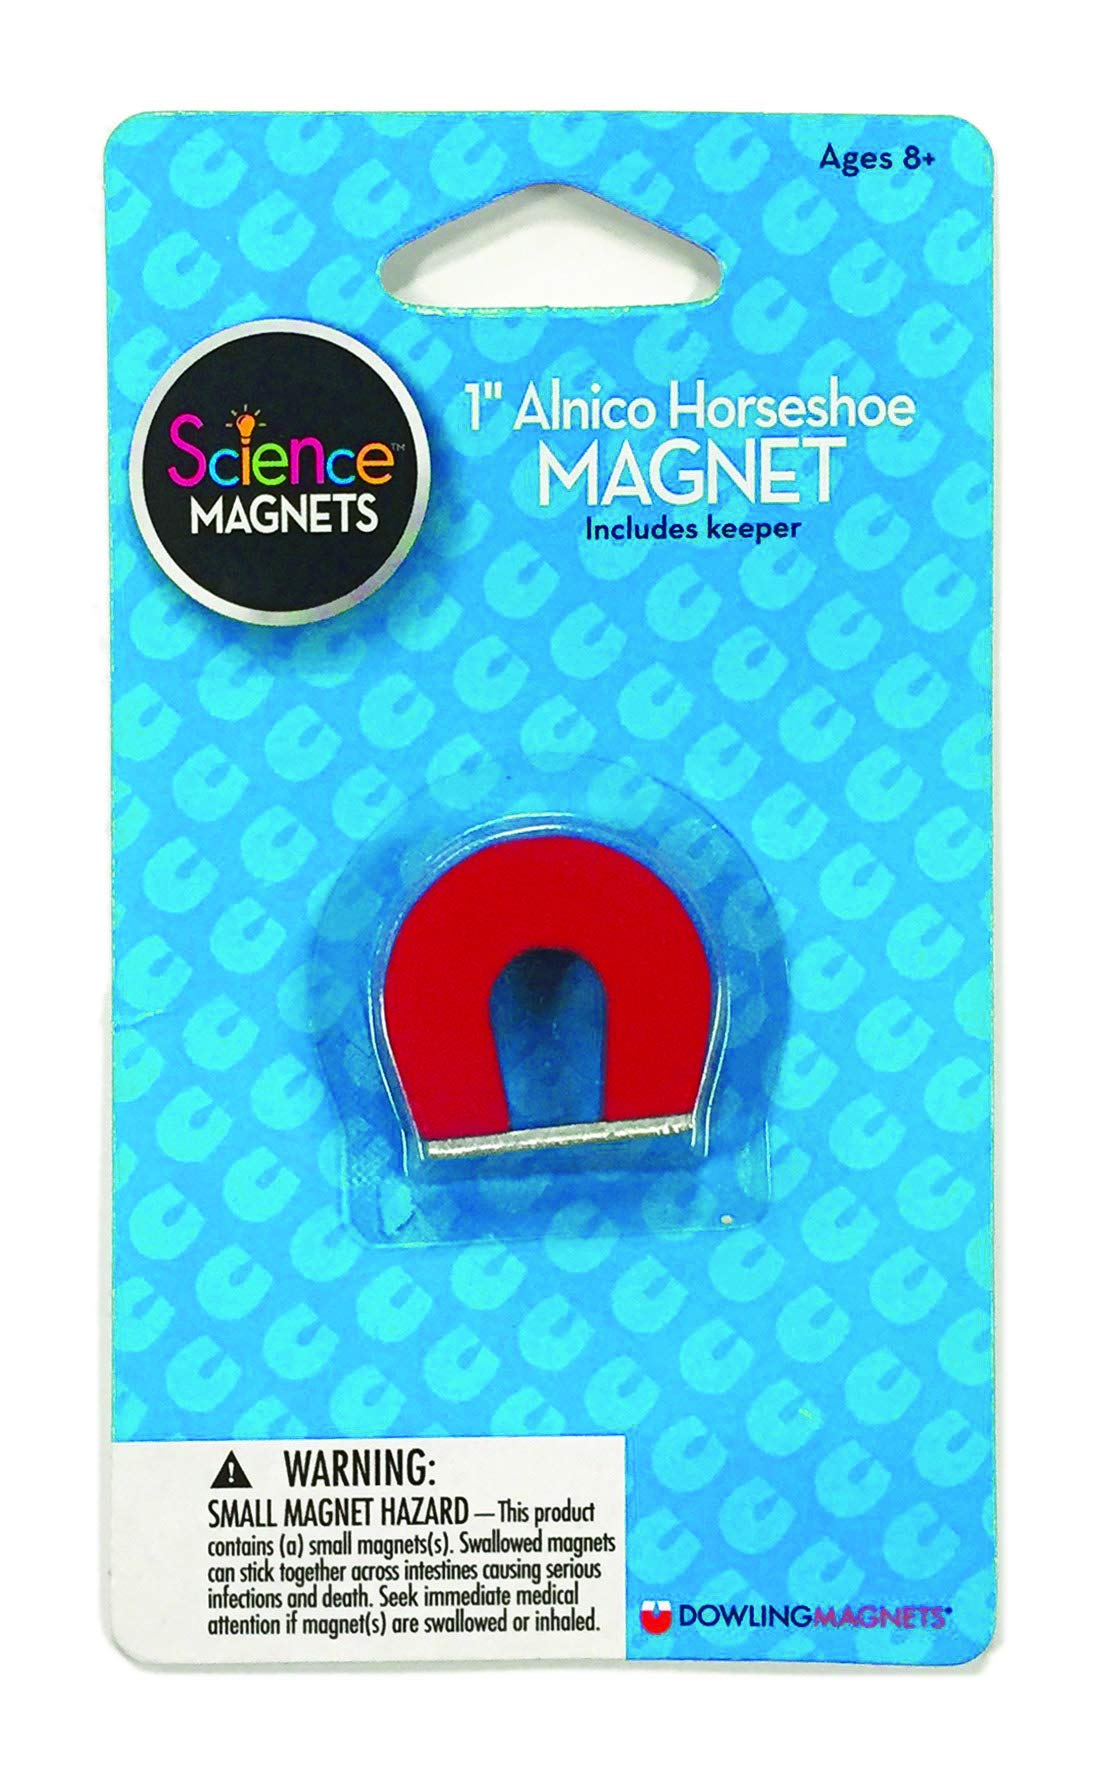 """Dowling Magnets Alnico Horseshoe Magnet (1"""" H), red, Includes kepper, Multicolor"""